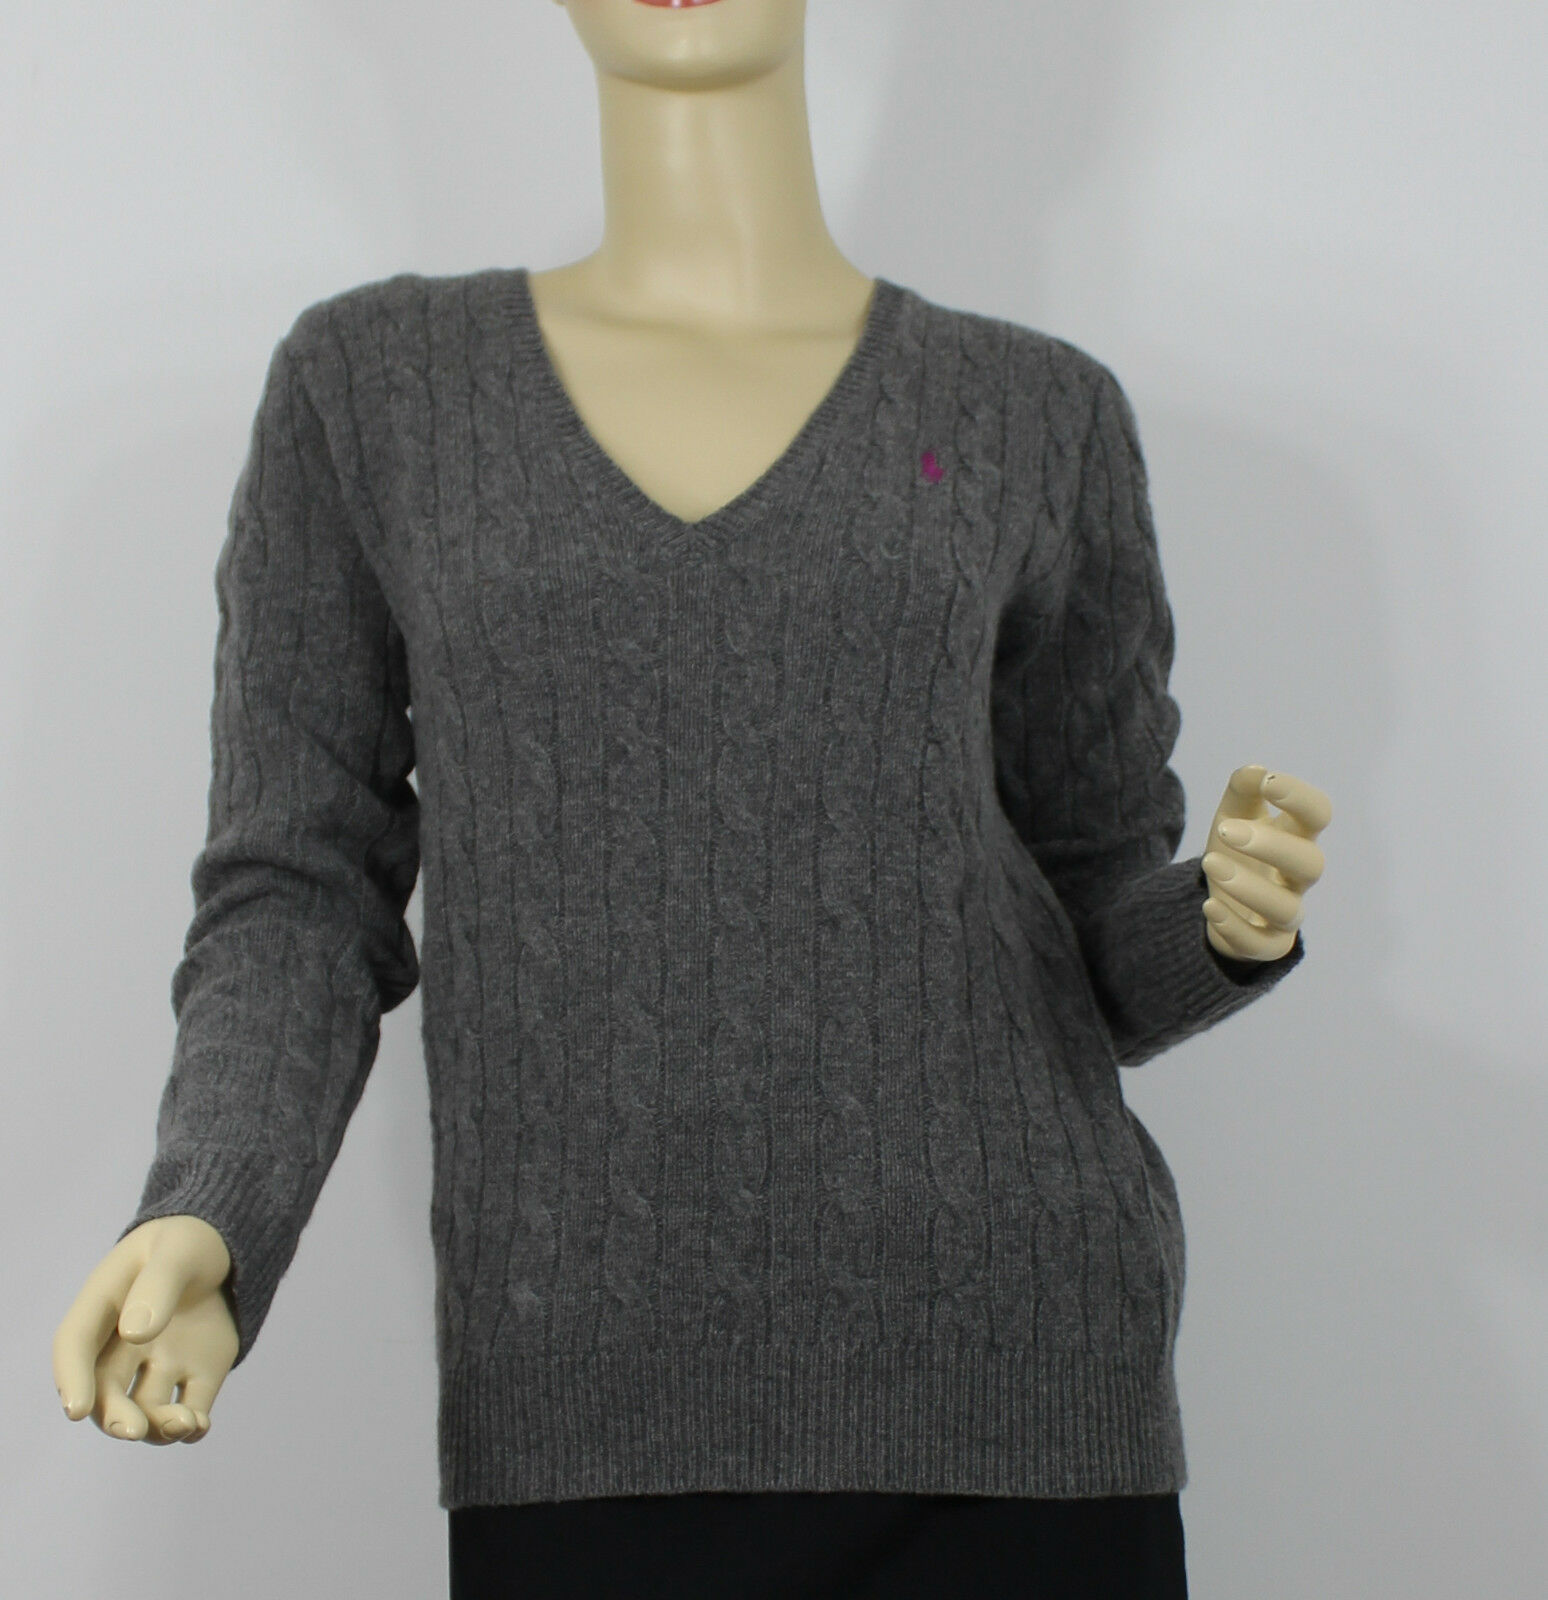 Ralph Lauren Cashmere Wool Cable Knit Sweater Womens Large Gray Pink